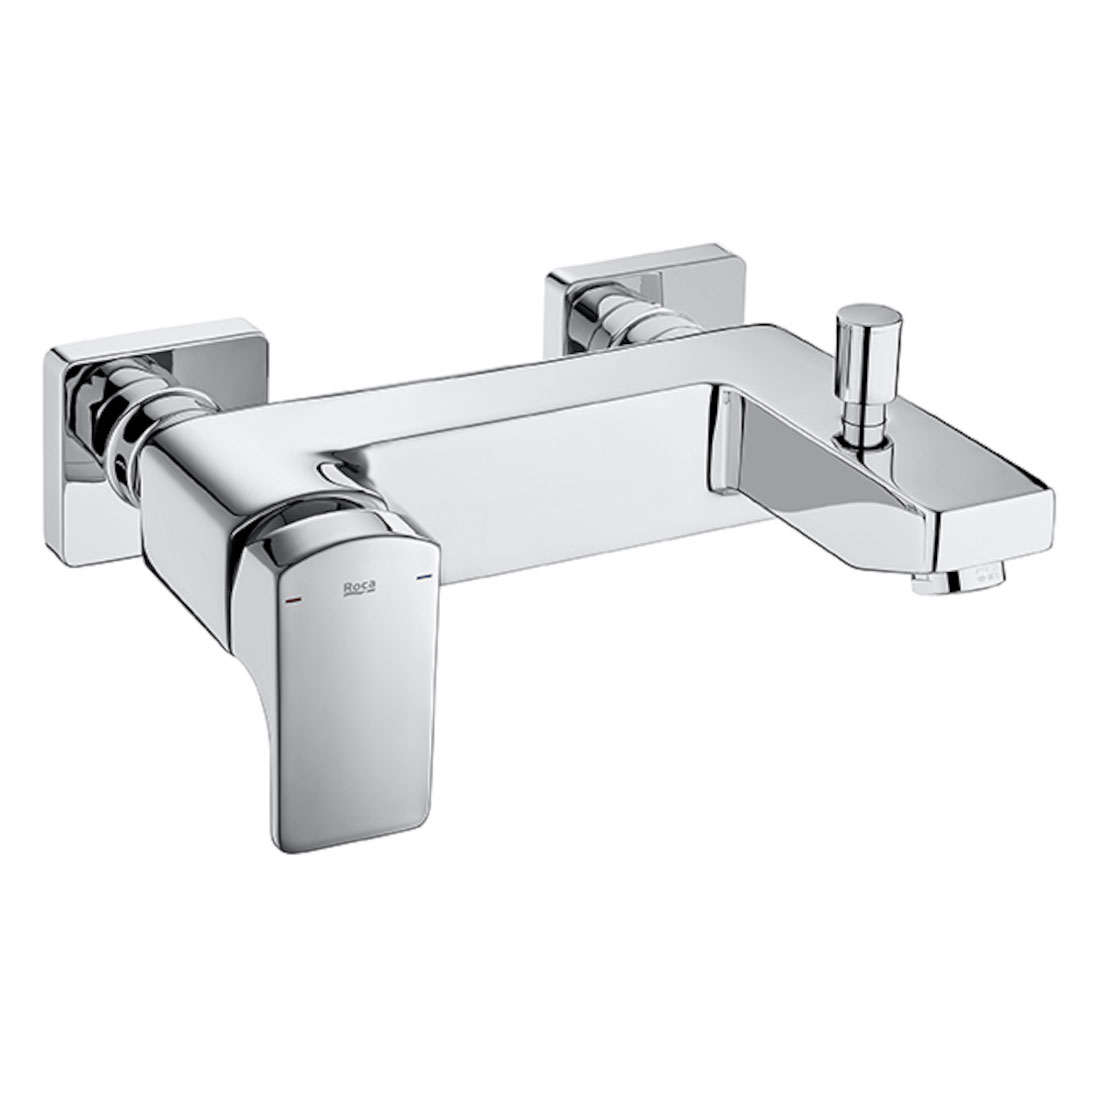 Roca L90 Bath Shower Mixer Tap with Shower Kit Wall Mounted - Chrome